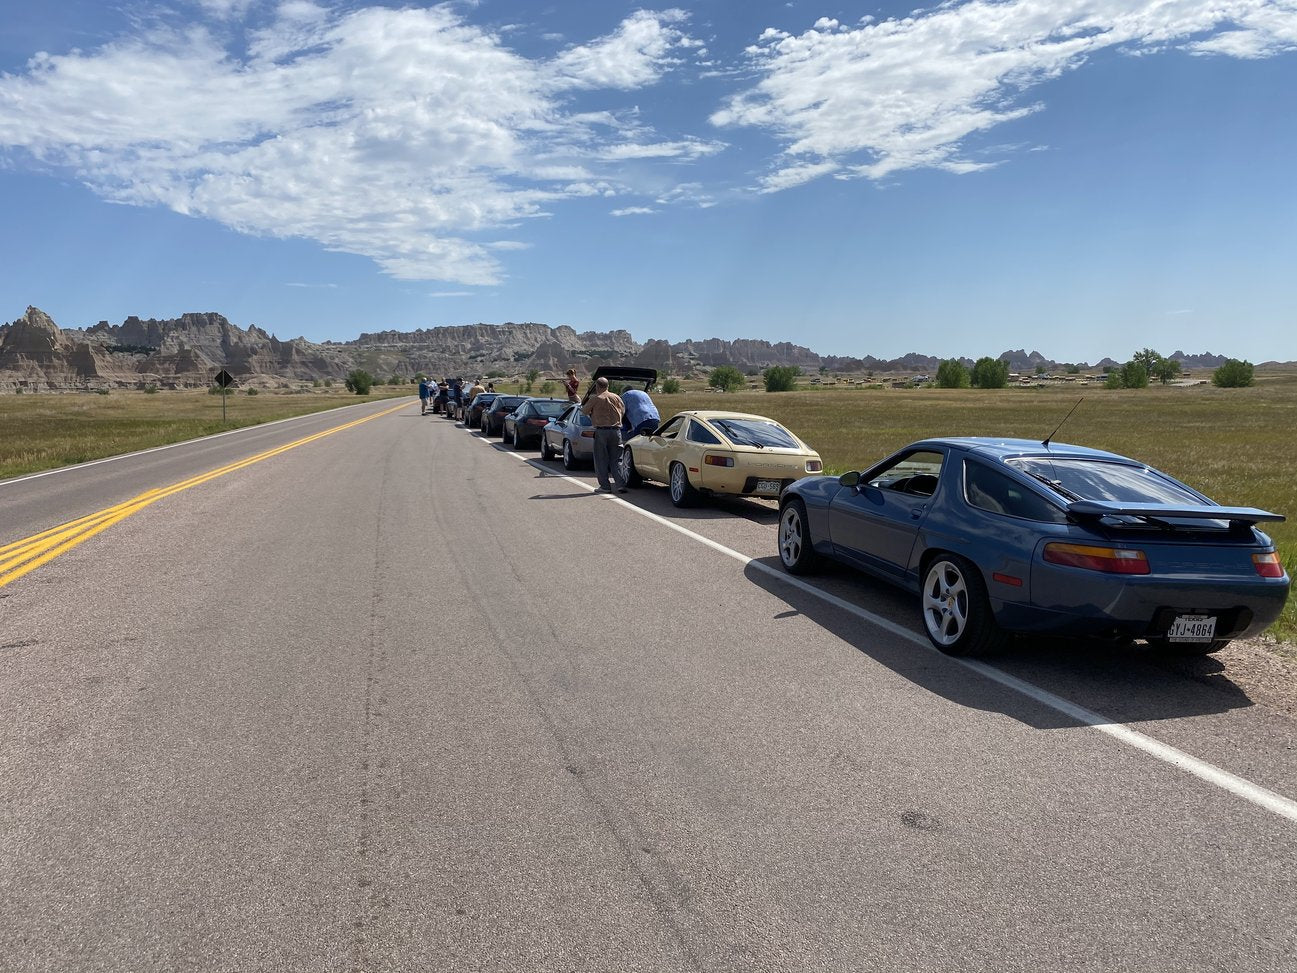 sharks in the badlands 928s event parked at the side of the road